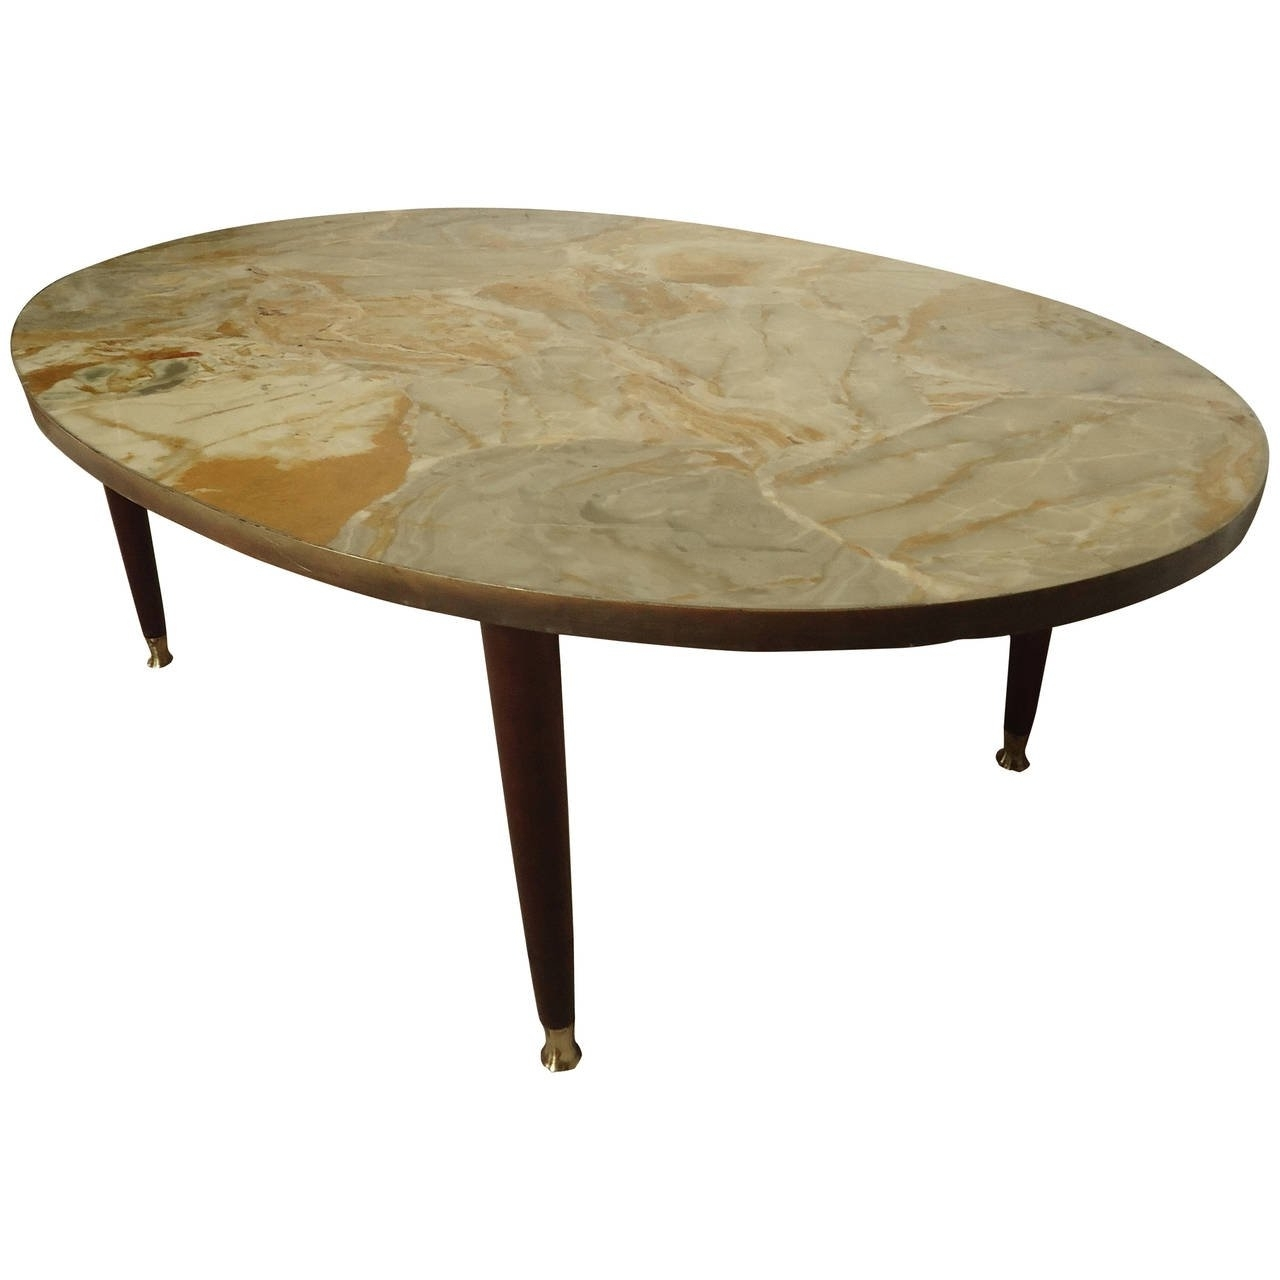 Latest Mid Century Modern Marble Coffee Tables Regarding Mid Century Modern Italian Marble Top Coffee Table For Sale At 1stdibs (View 16 of 20)